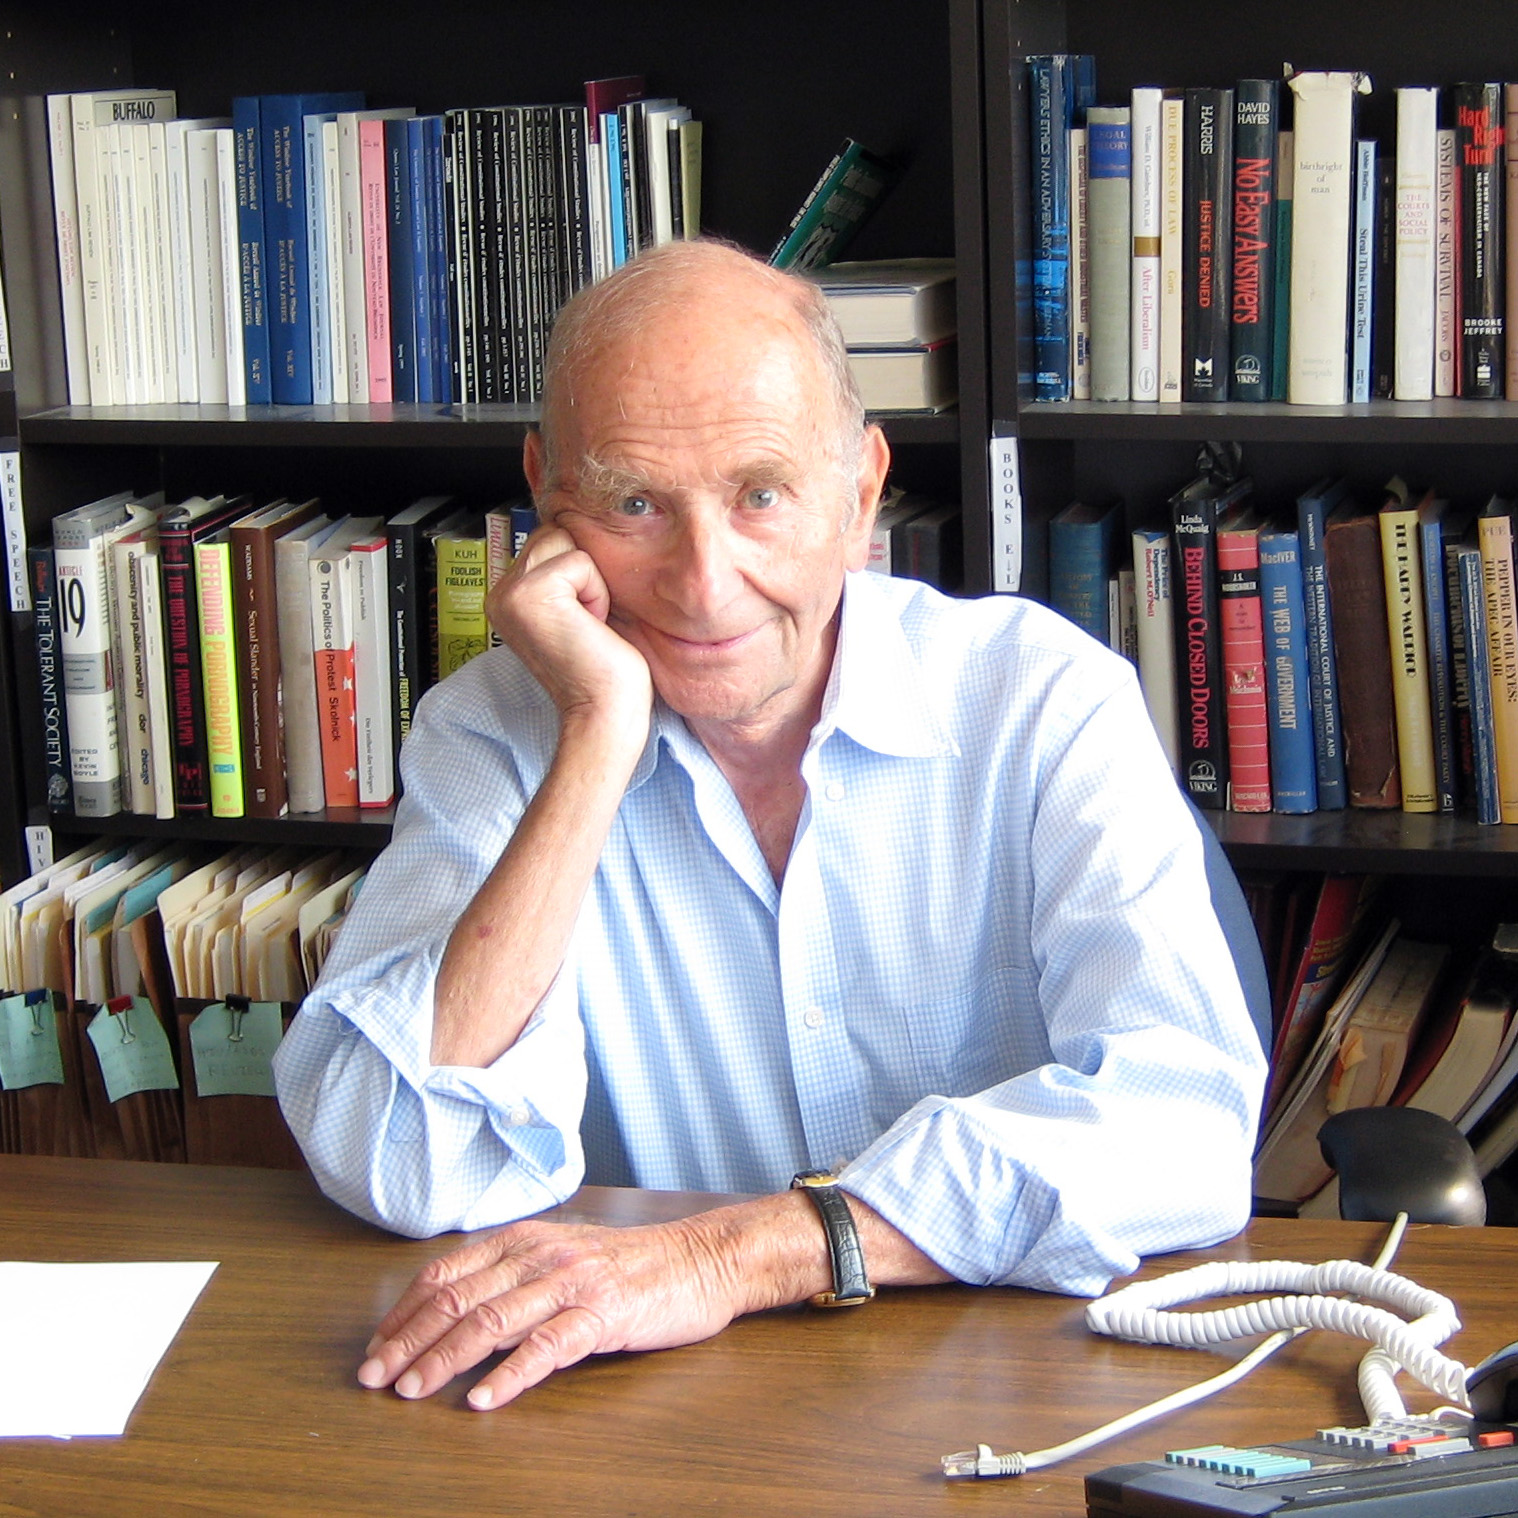 Alan Borovoy sitting at his desk with many books in the background. He is smiling and is leaning his right cheek against his hand.